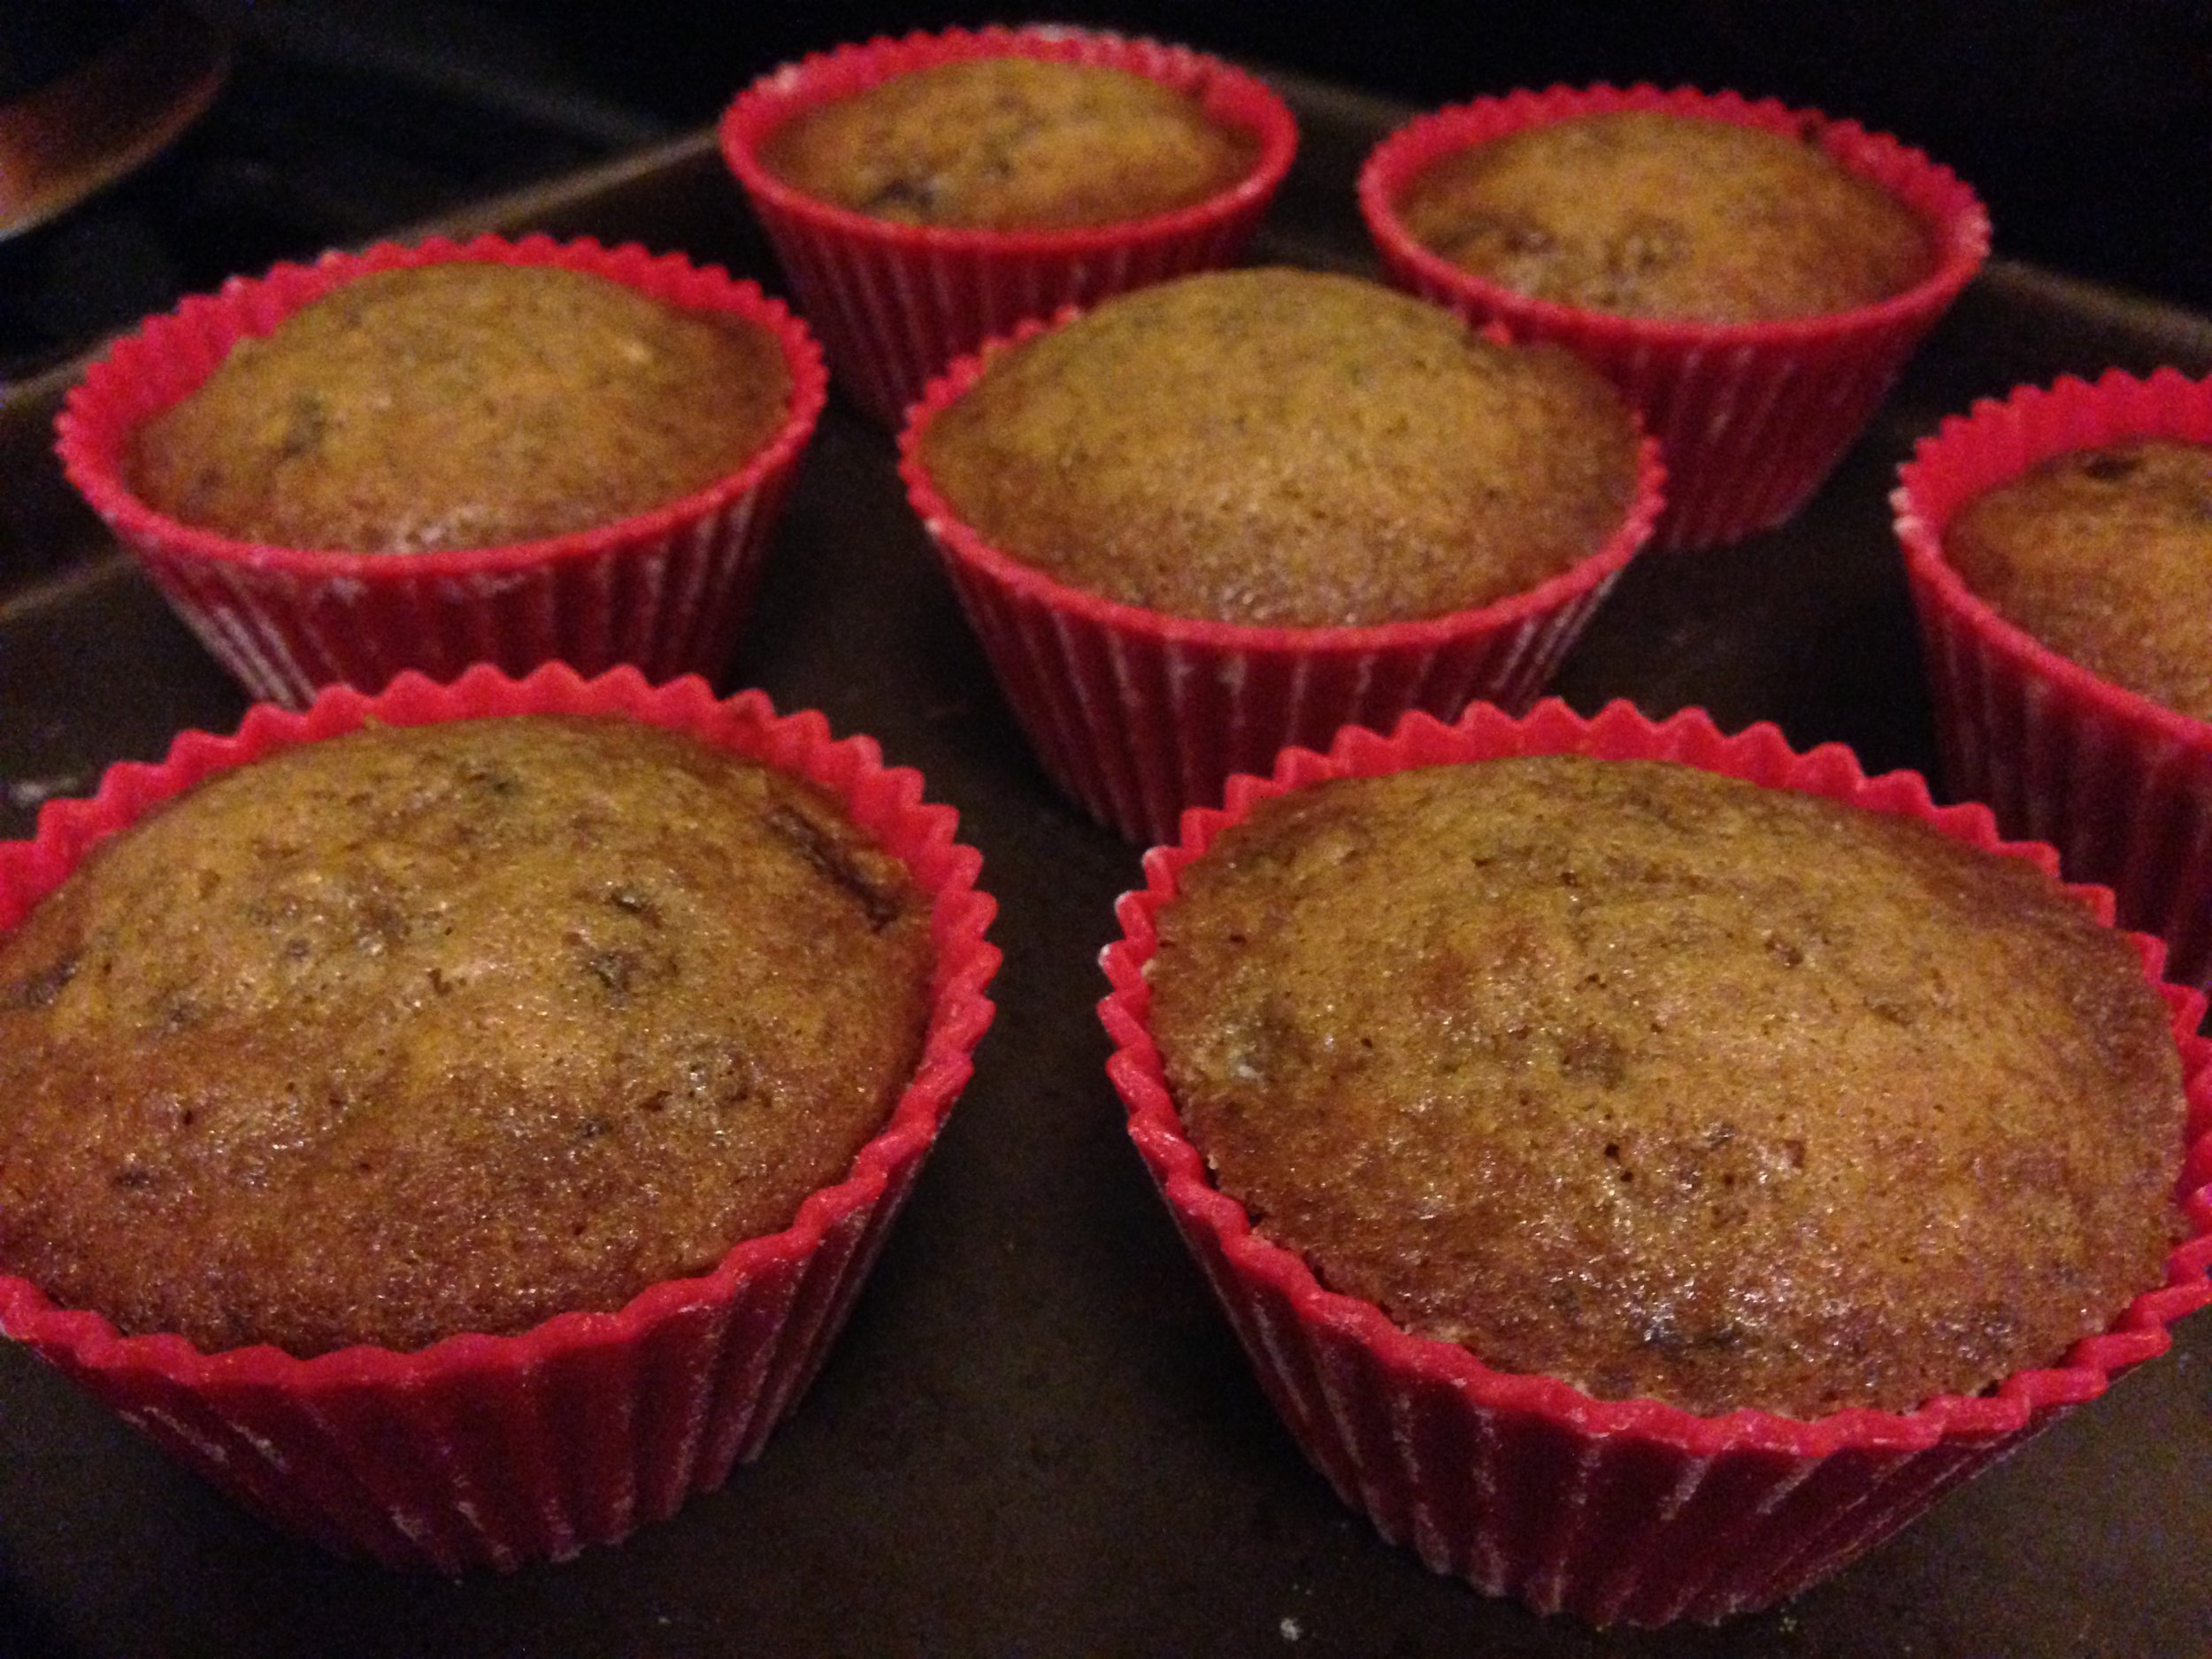 Date Cakes cooling, right out of the oven.